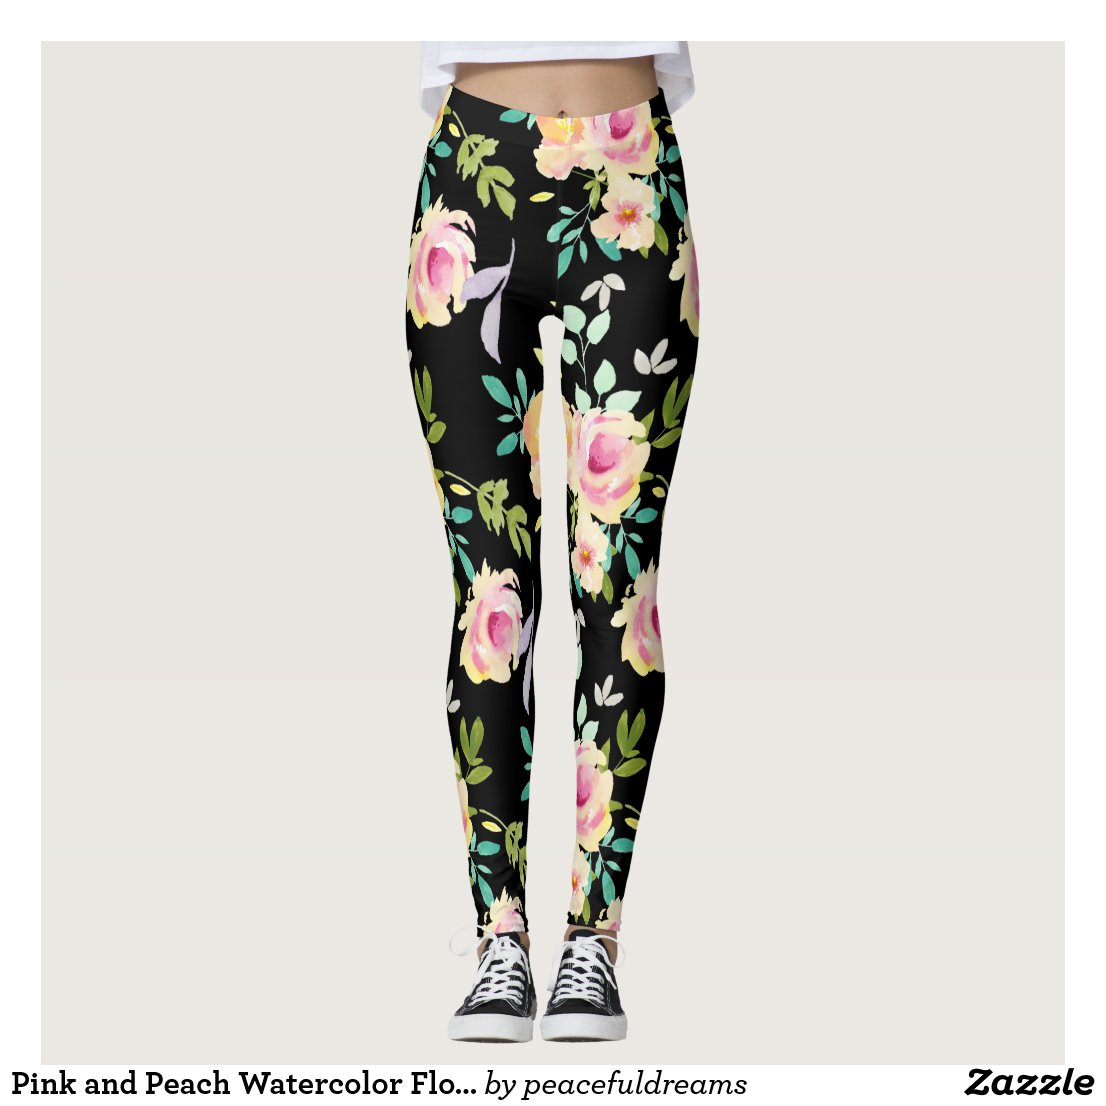 Pink and Peach Watercolor Flowers Leggings